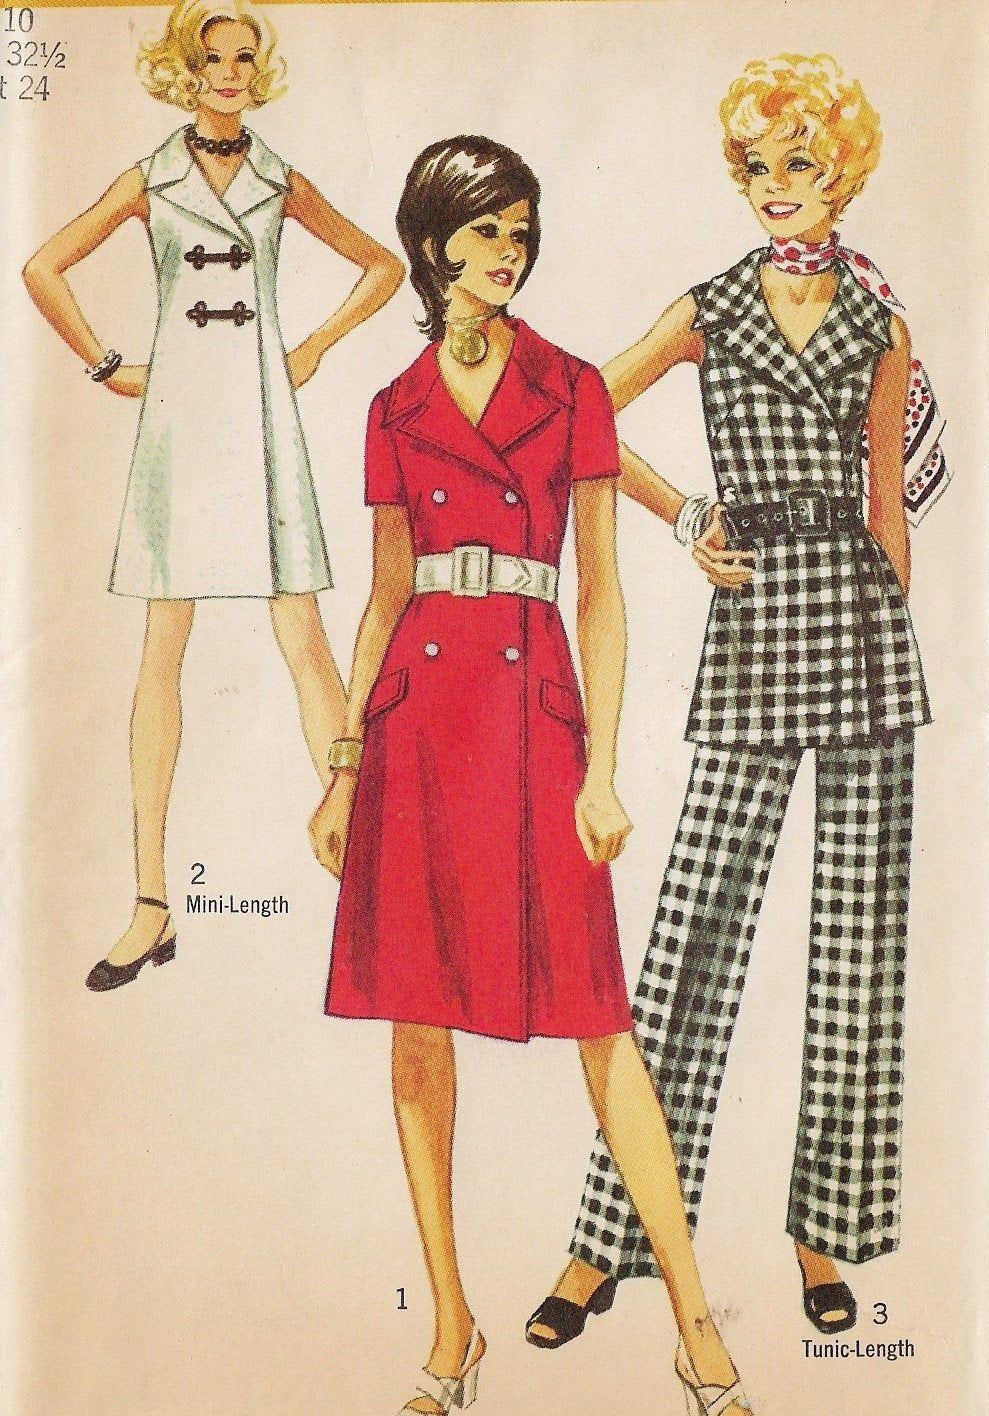 1970s Simplicity Sewing Pattern 9220 Womens Double Breasted Etsy In 2021 Double Breasted Coat Women Double Breasted Coat Dress Simplicity Sewing Patterns